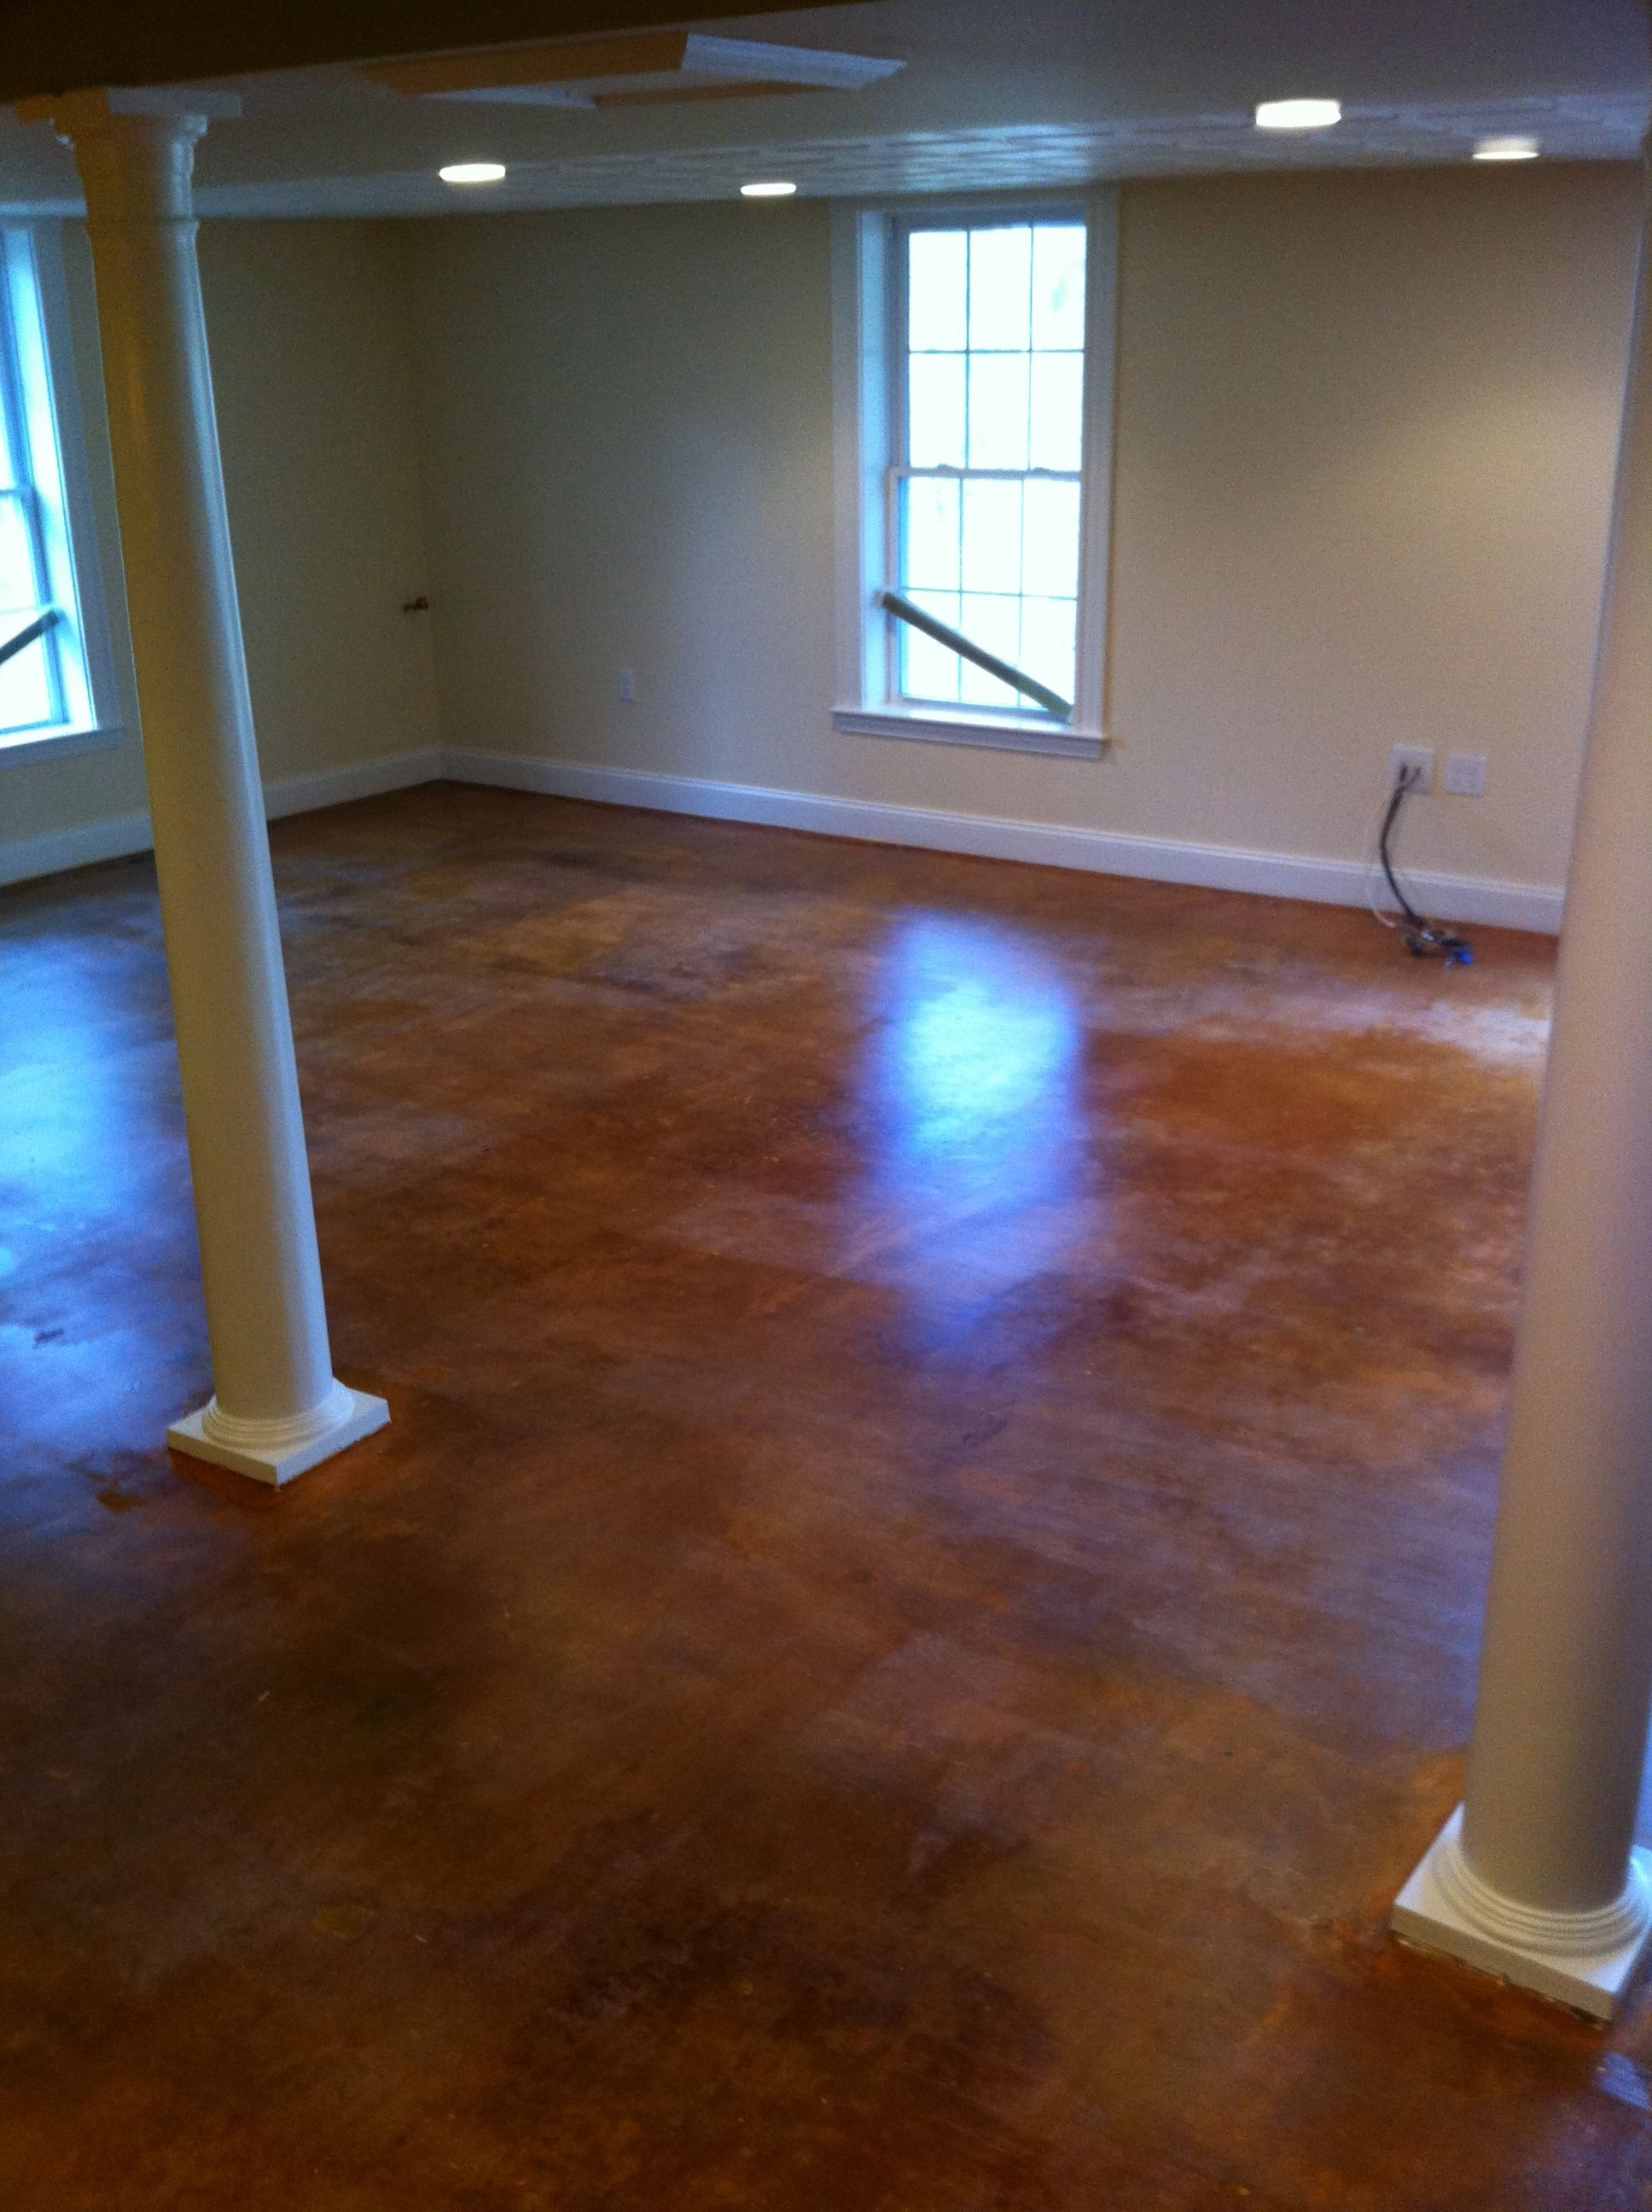 Garage Floor Resurfacing Coatings Tiles Epoxy Tile